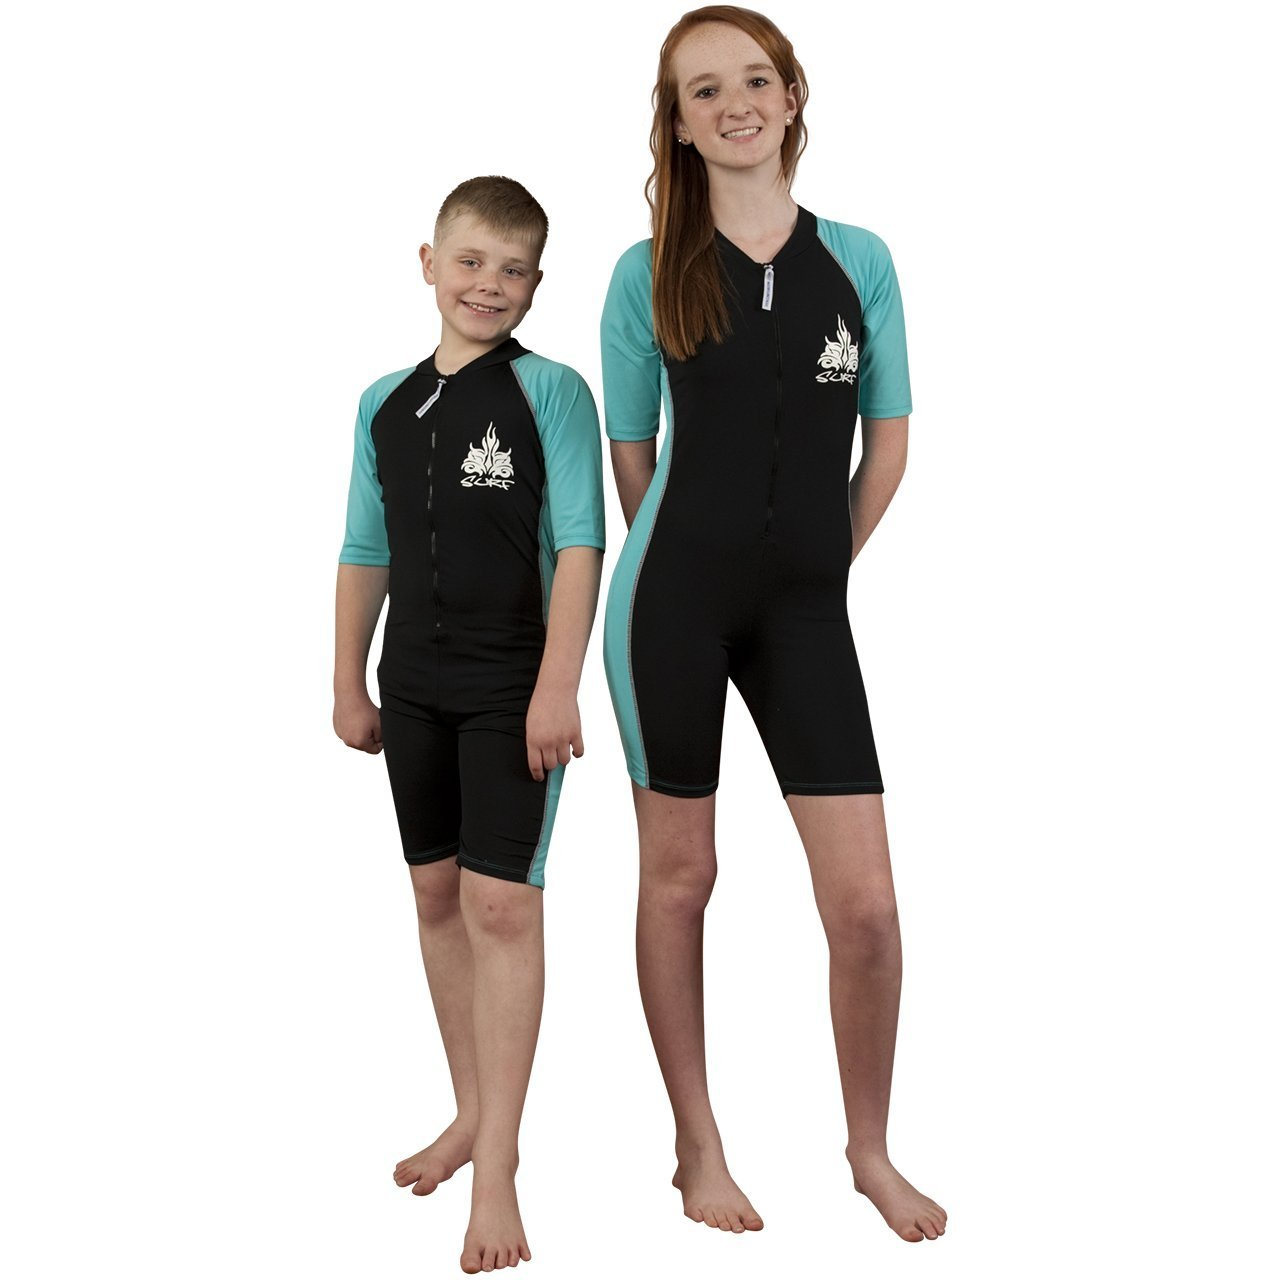 a98fecda Amazon.com : UV Swimsuit for girls or boys- SPF / UPF Sun Protection  Swimwear - Solartex : Clothing